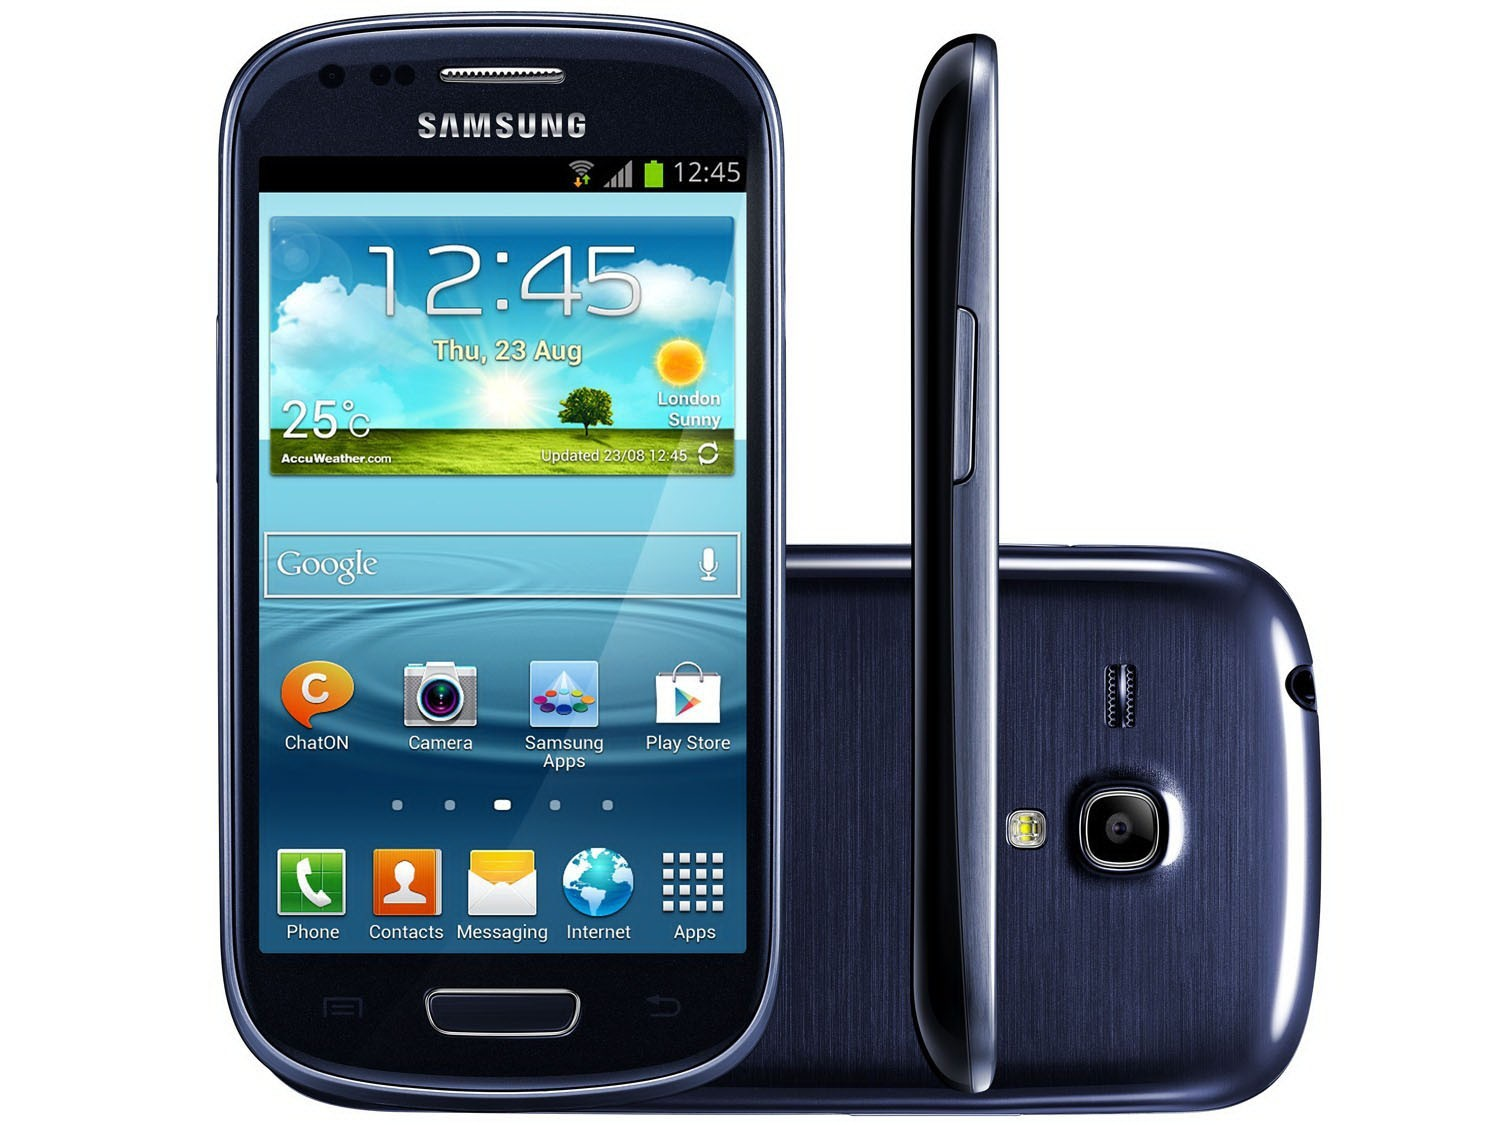 Smartphone Libre Samsung Galaxy Trend Plus S7580 Recycle Your Gadgets For Cash